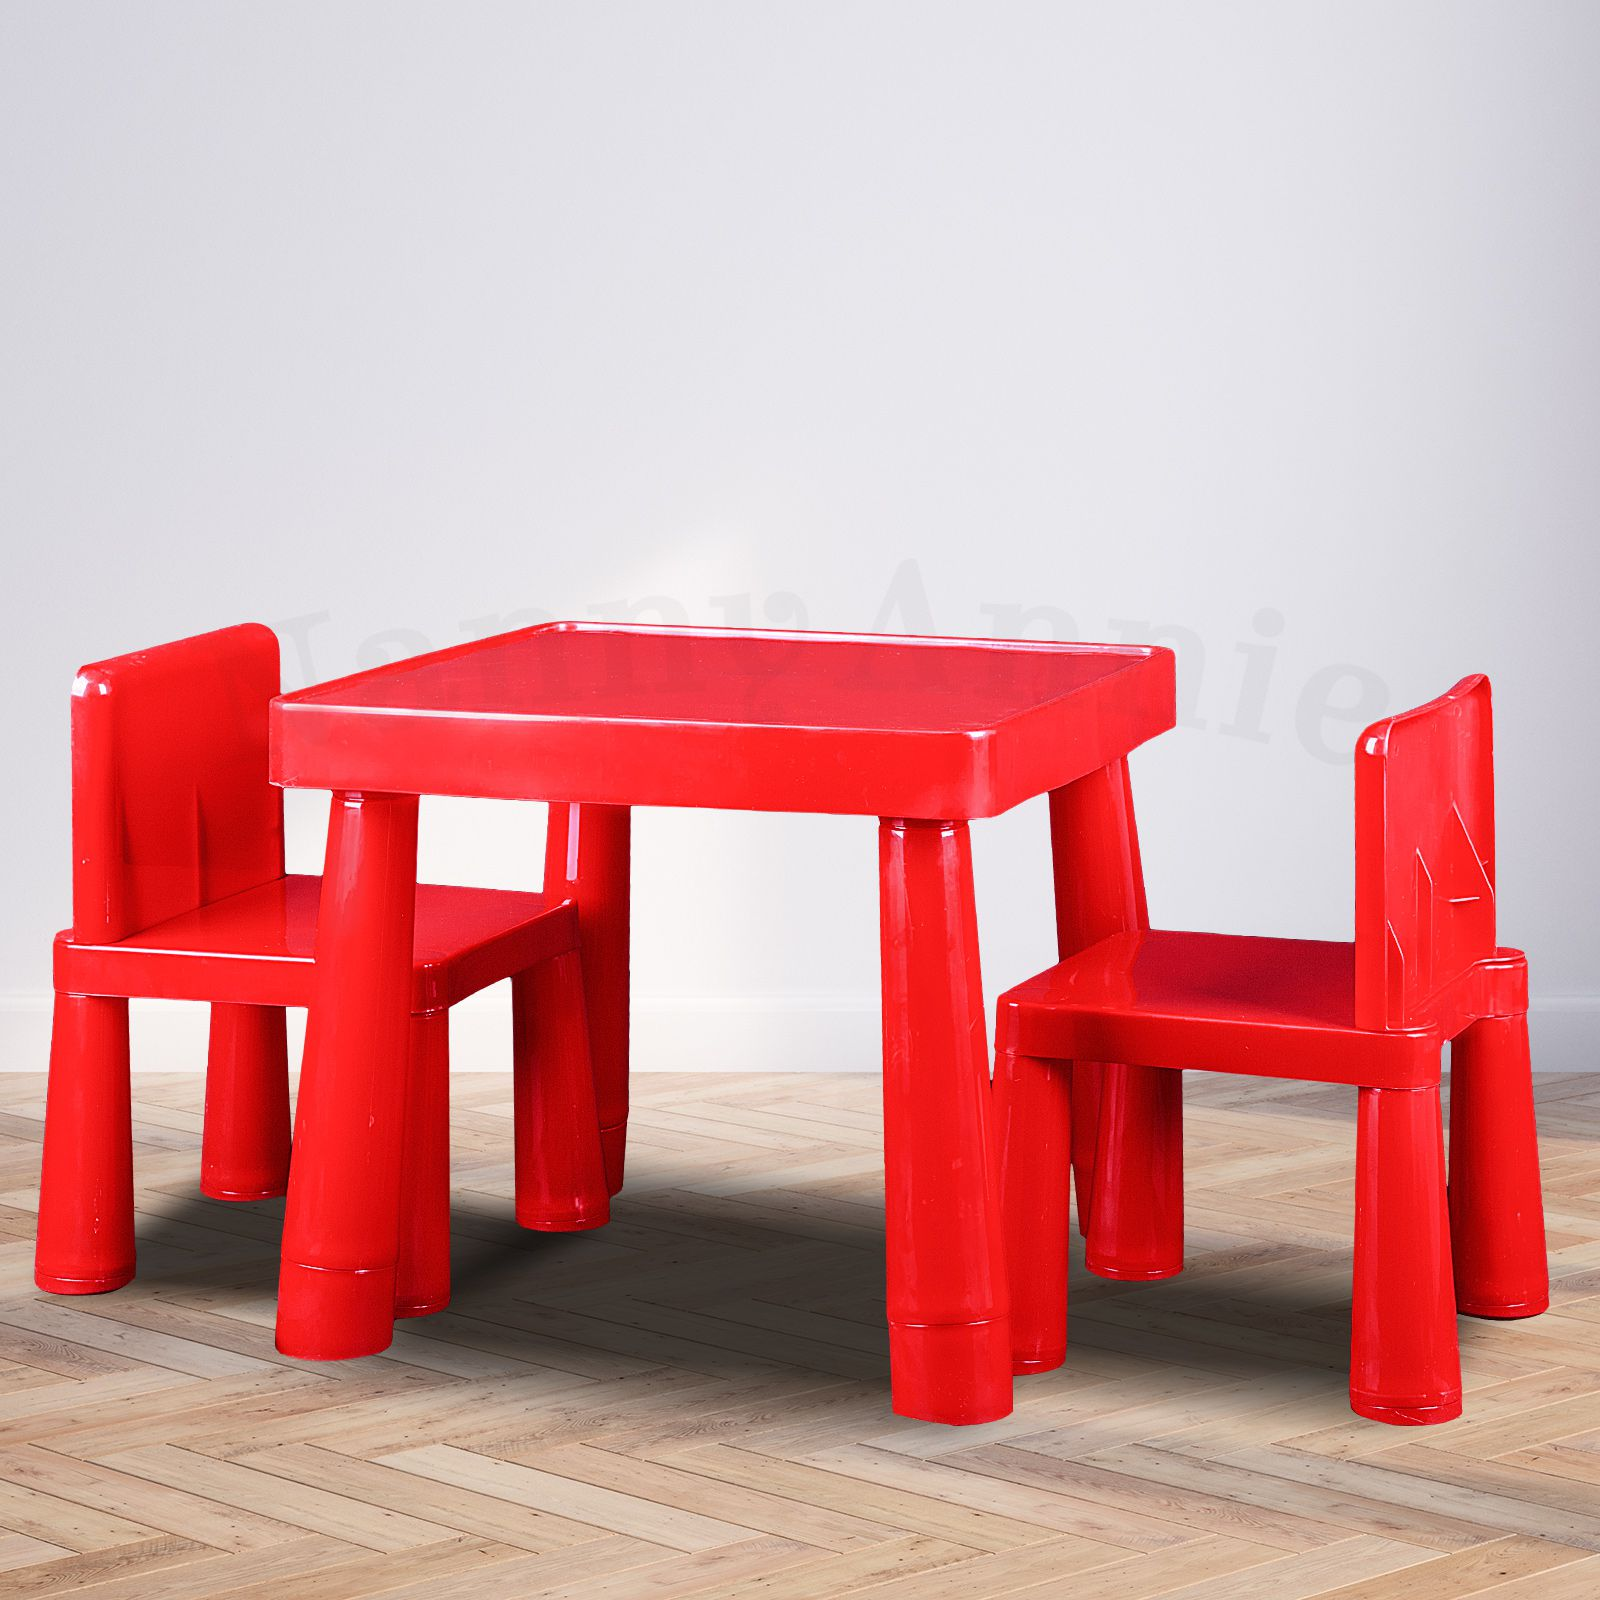 Prime Kids Table Chair Play Furniture Set Plastic Fountain Activity Dining Chairs Red Interior Design Ideas Gresisoteloinfo